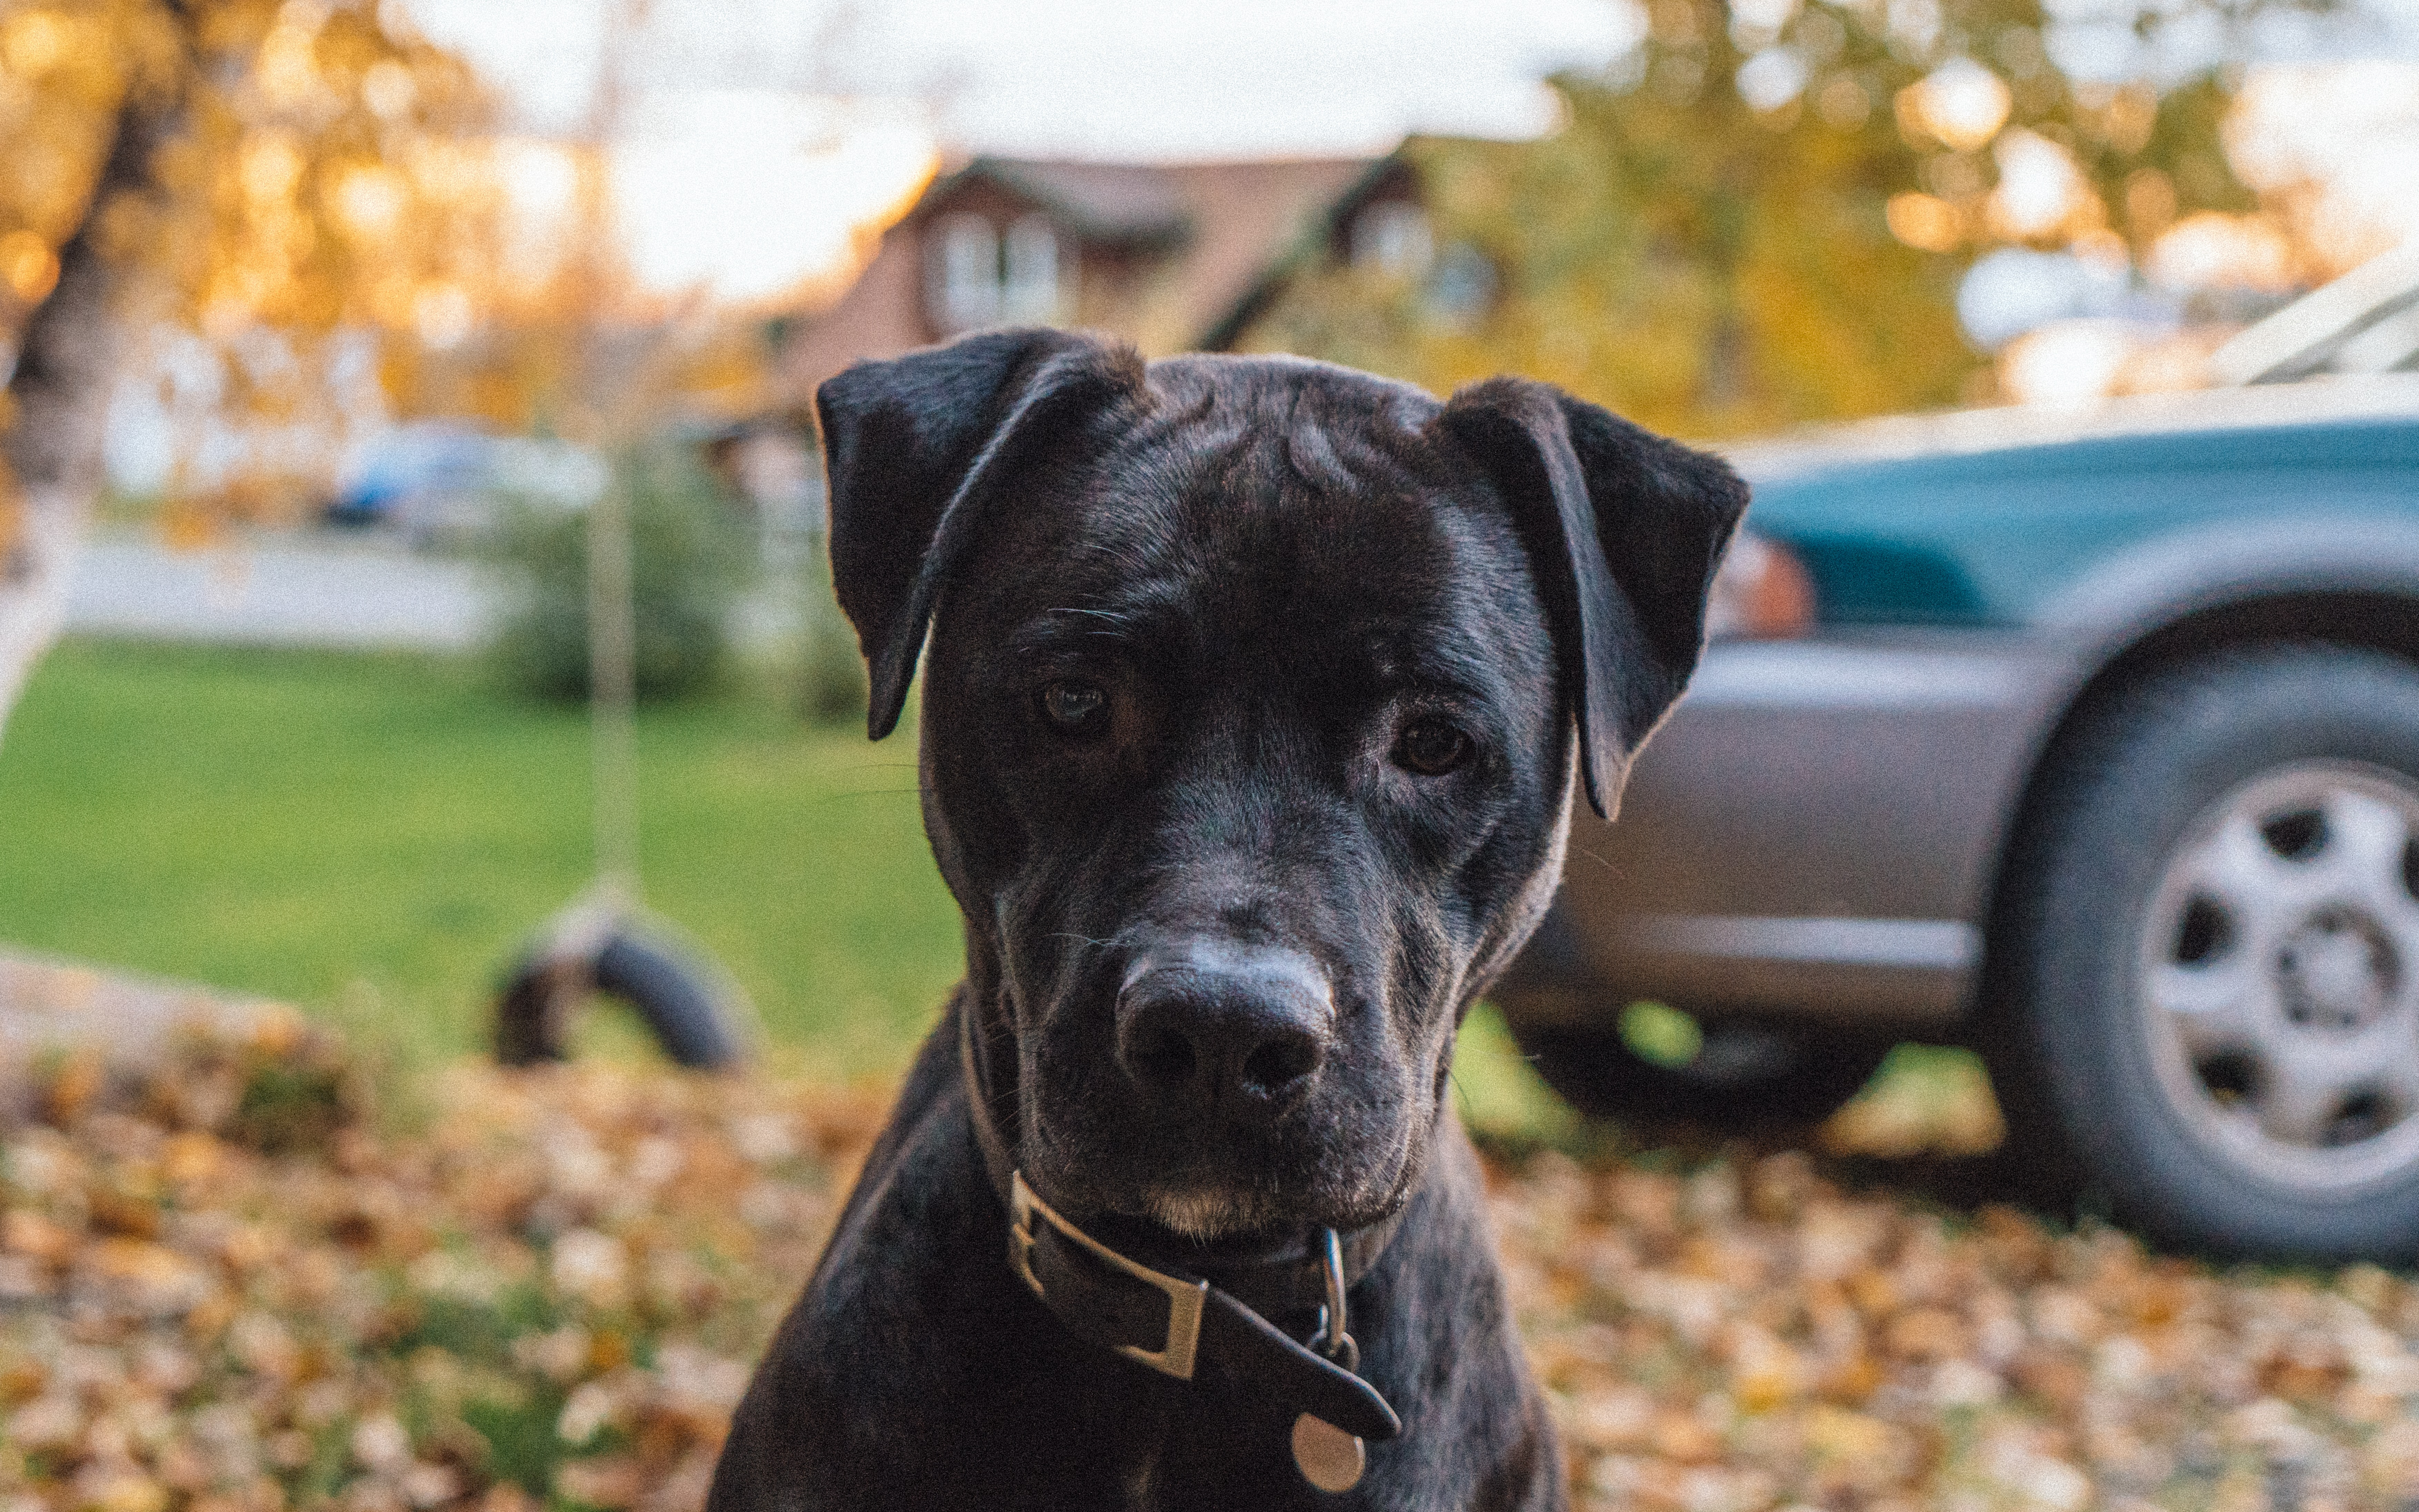 sitting black Retriever puppy on grass field with withered leaf